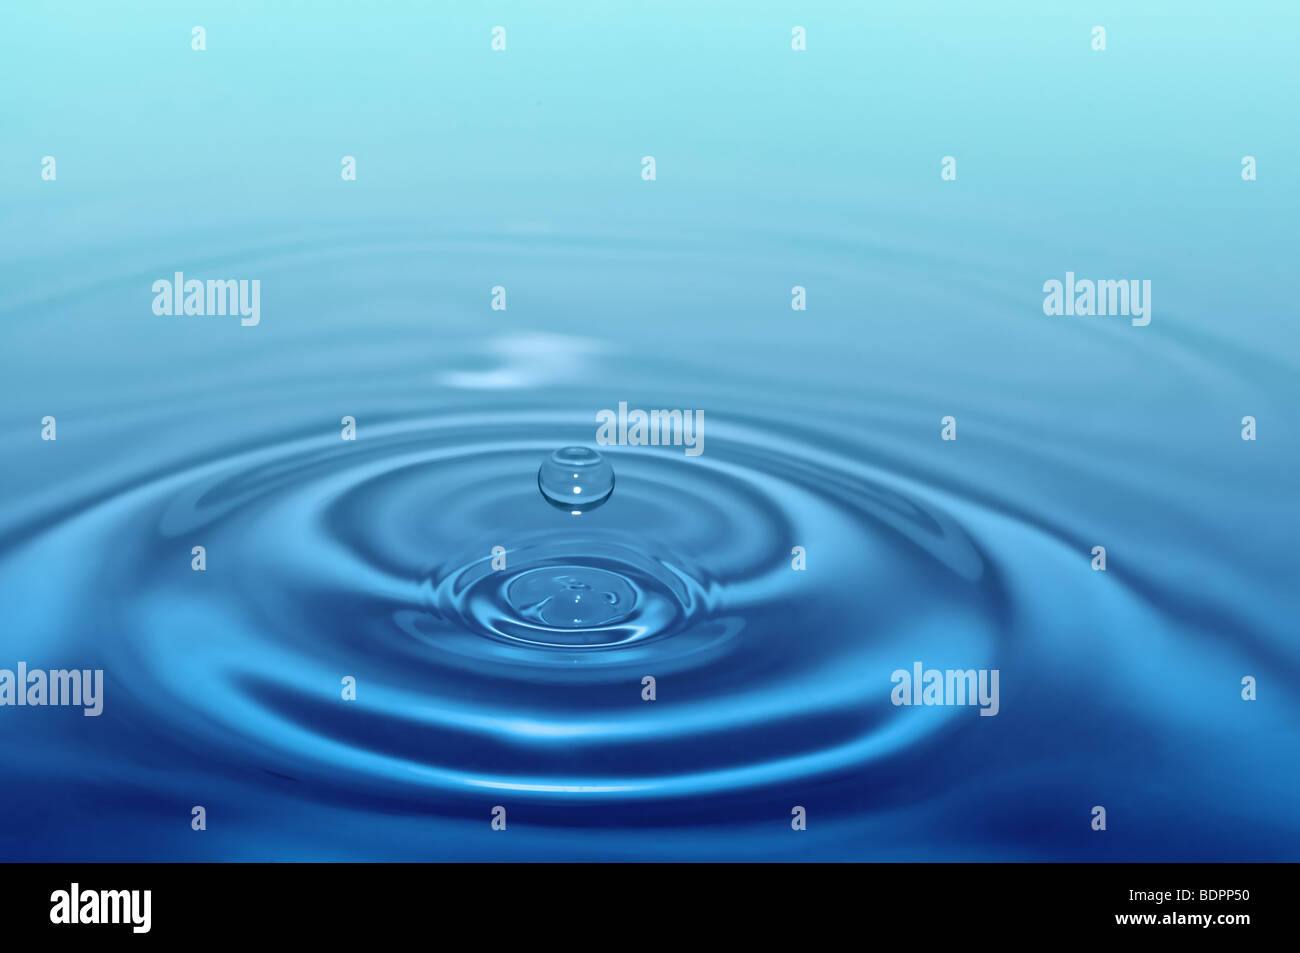 Splash Water drop pour concept design Photo Stock